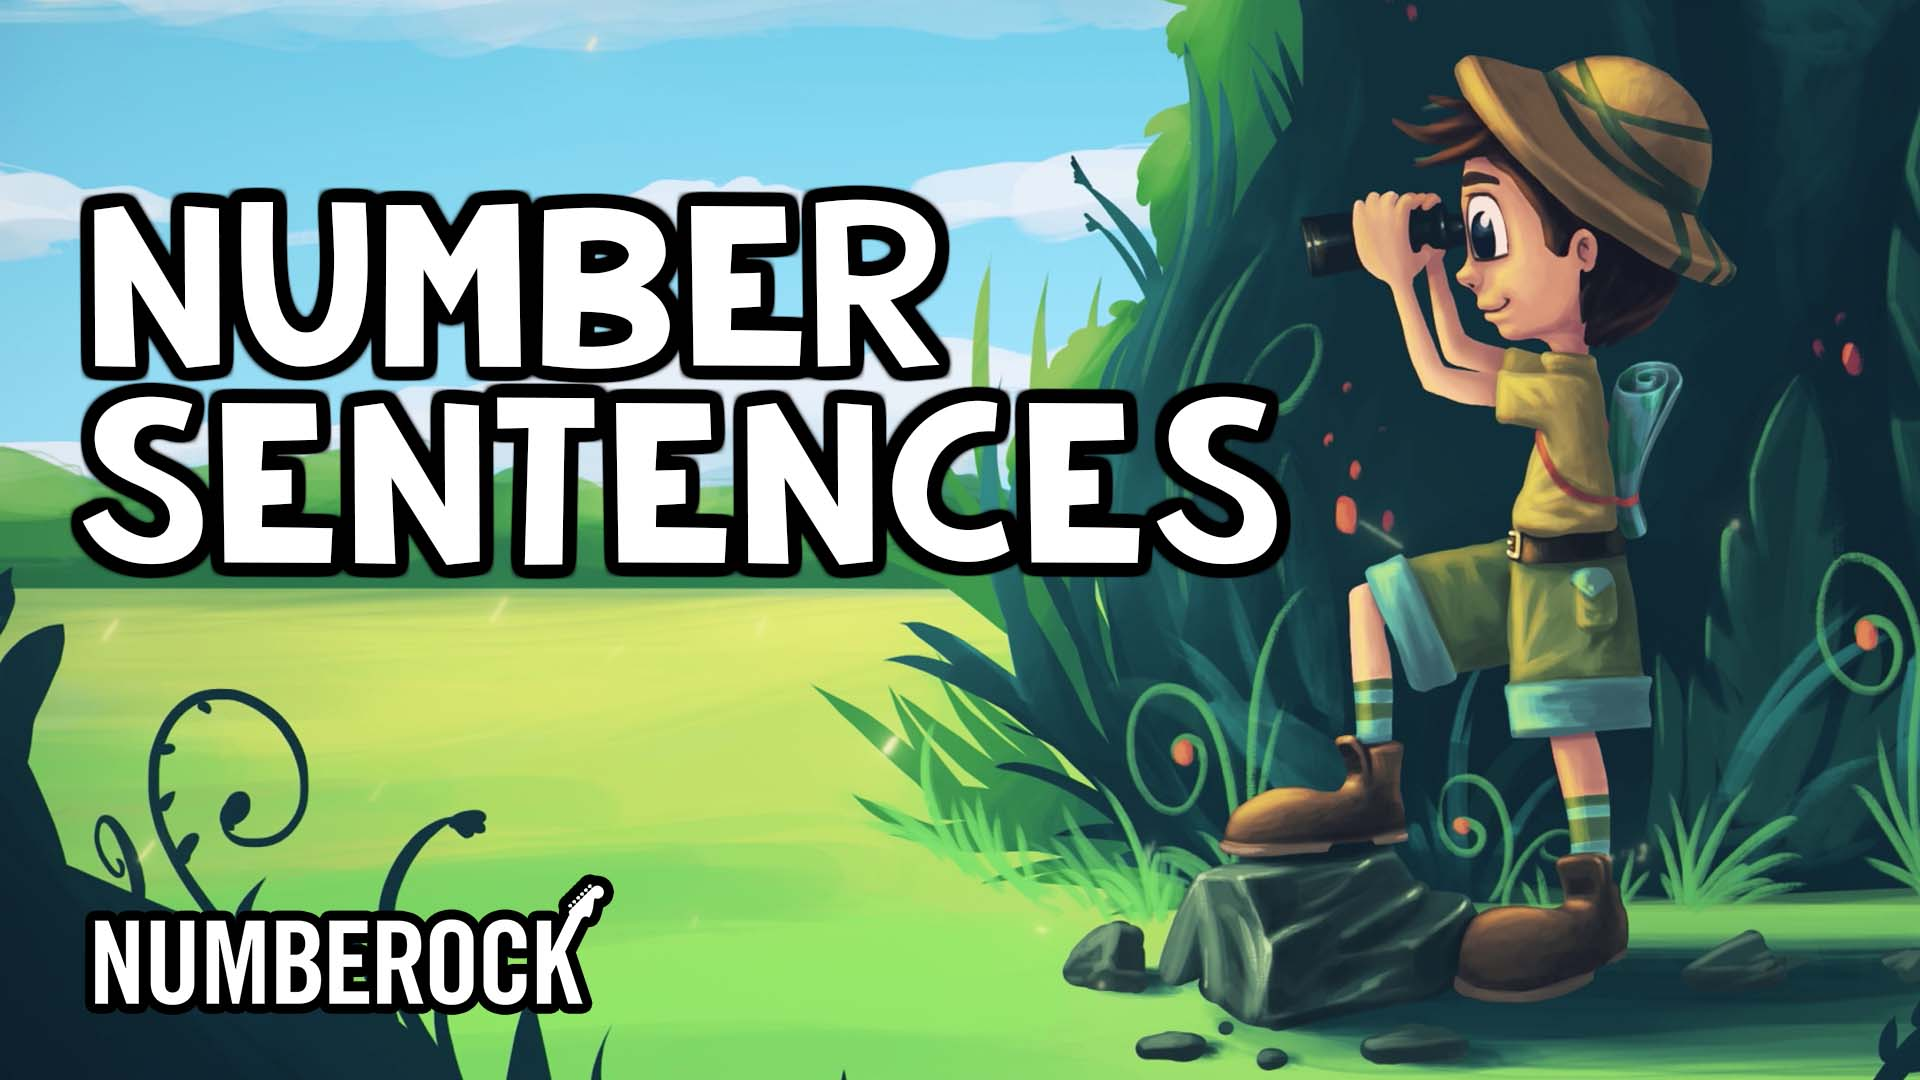 Number Sentences by Numberock | Video with Worksheets, Anchor Chart, and Activities